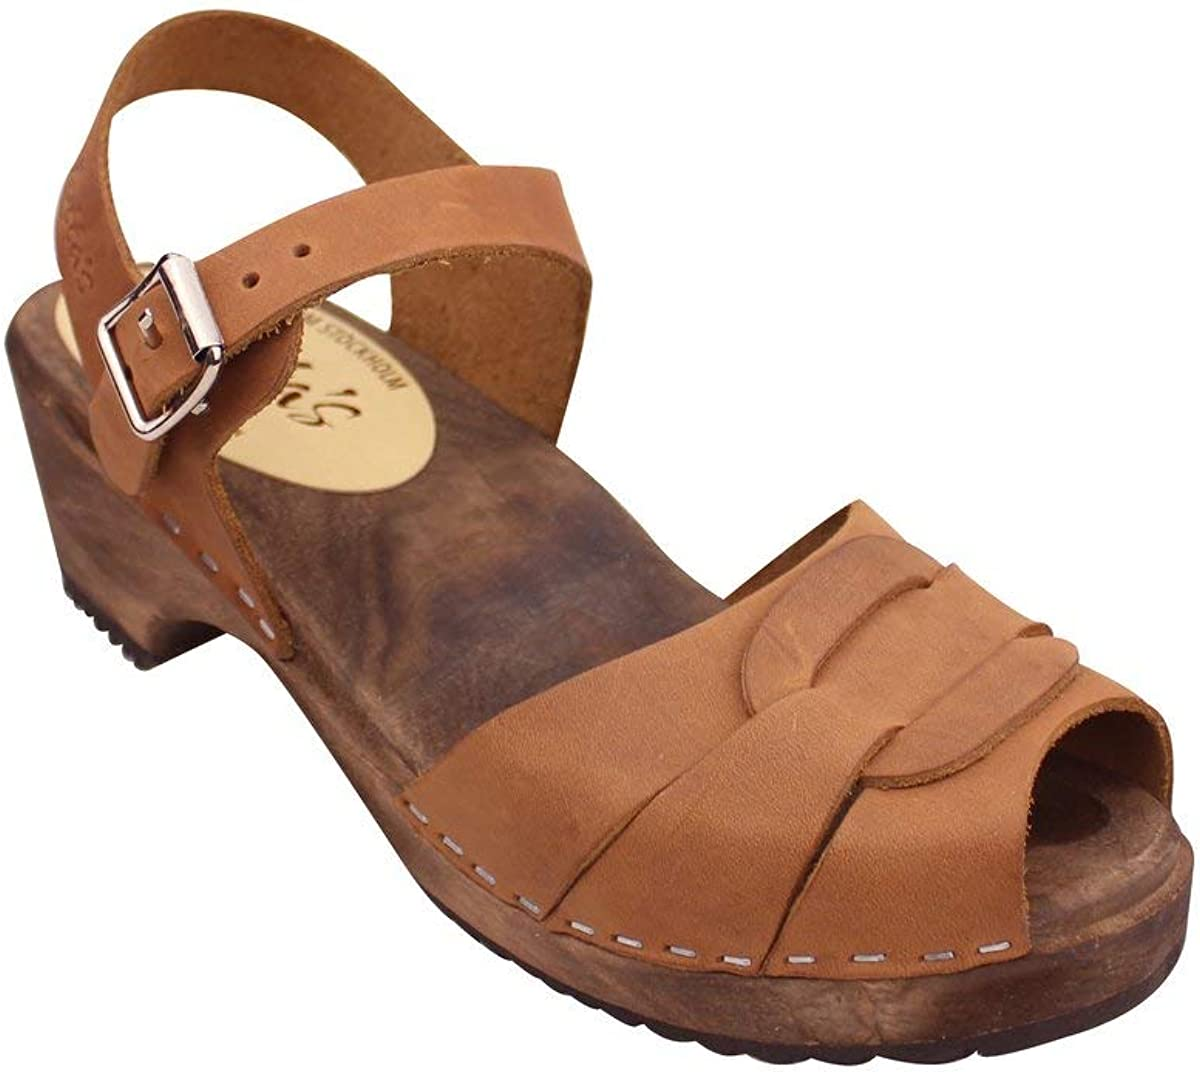 Lotta From Stockholm Swedish Low Peep Toe Clogs in Brown Oiled on Brown Base